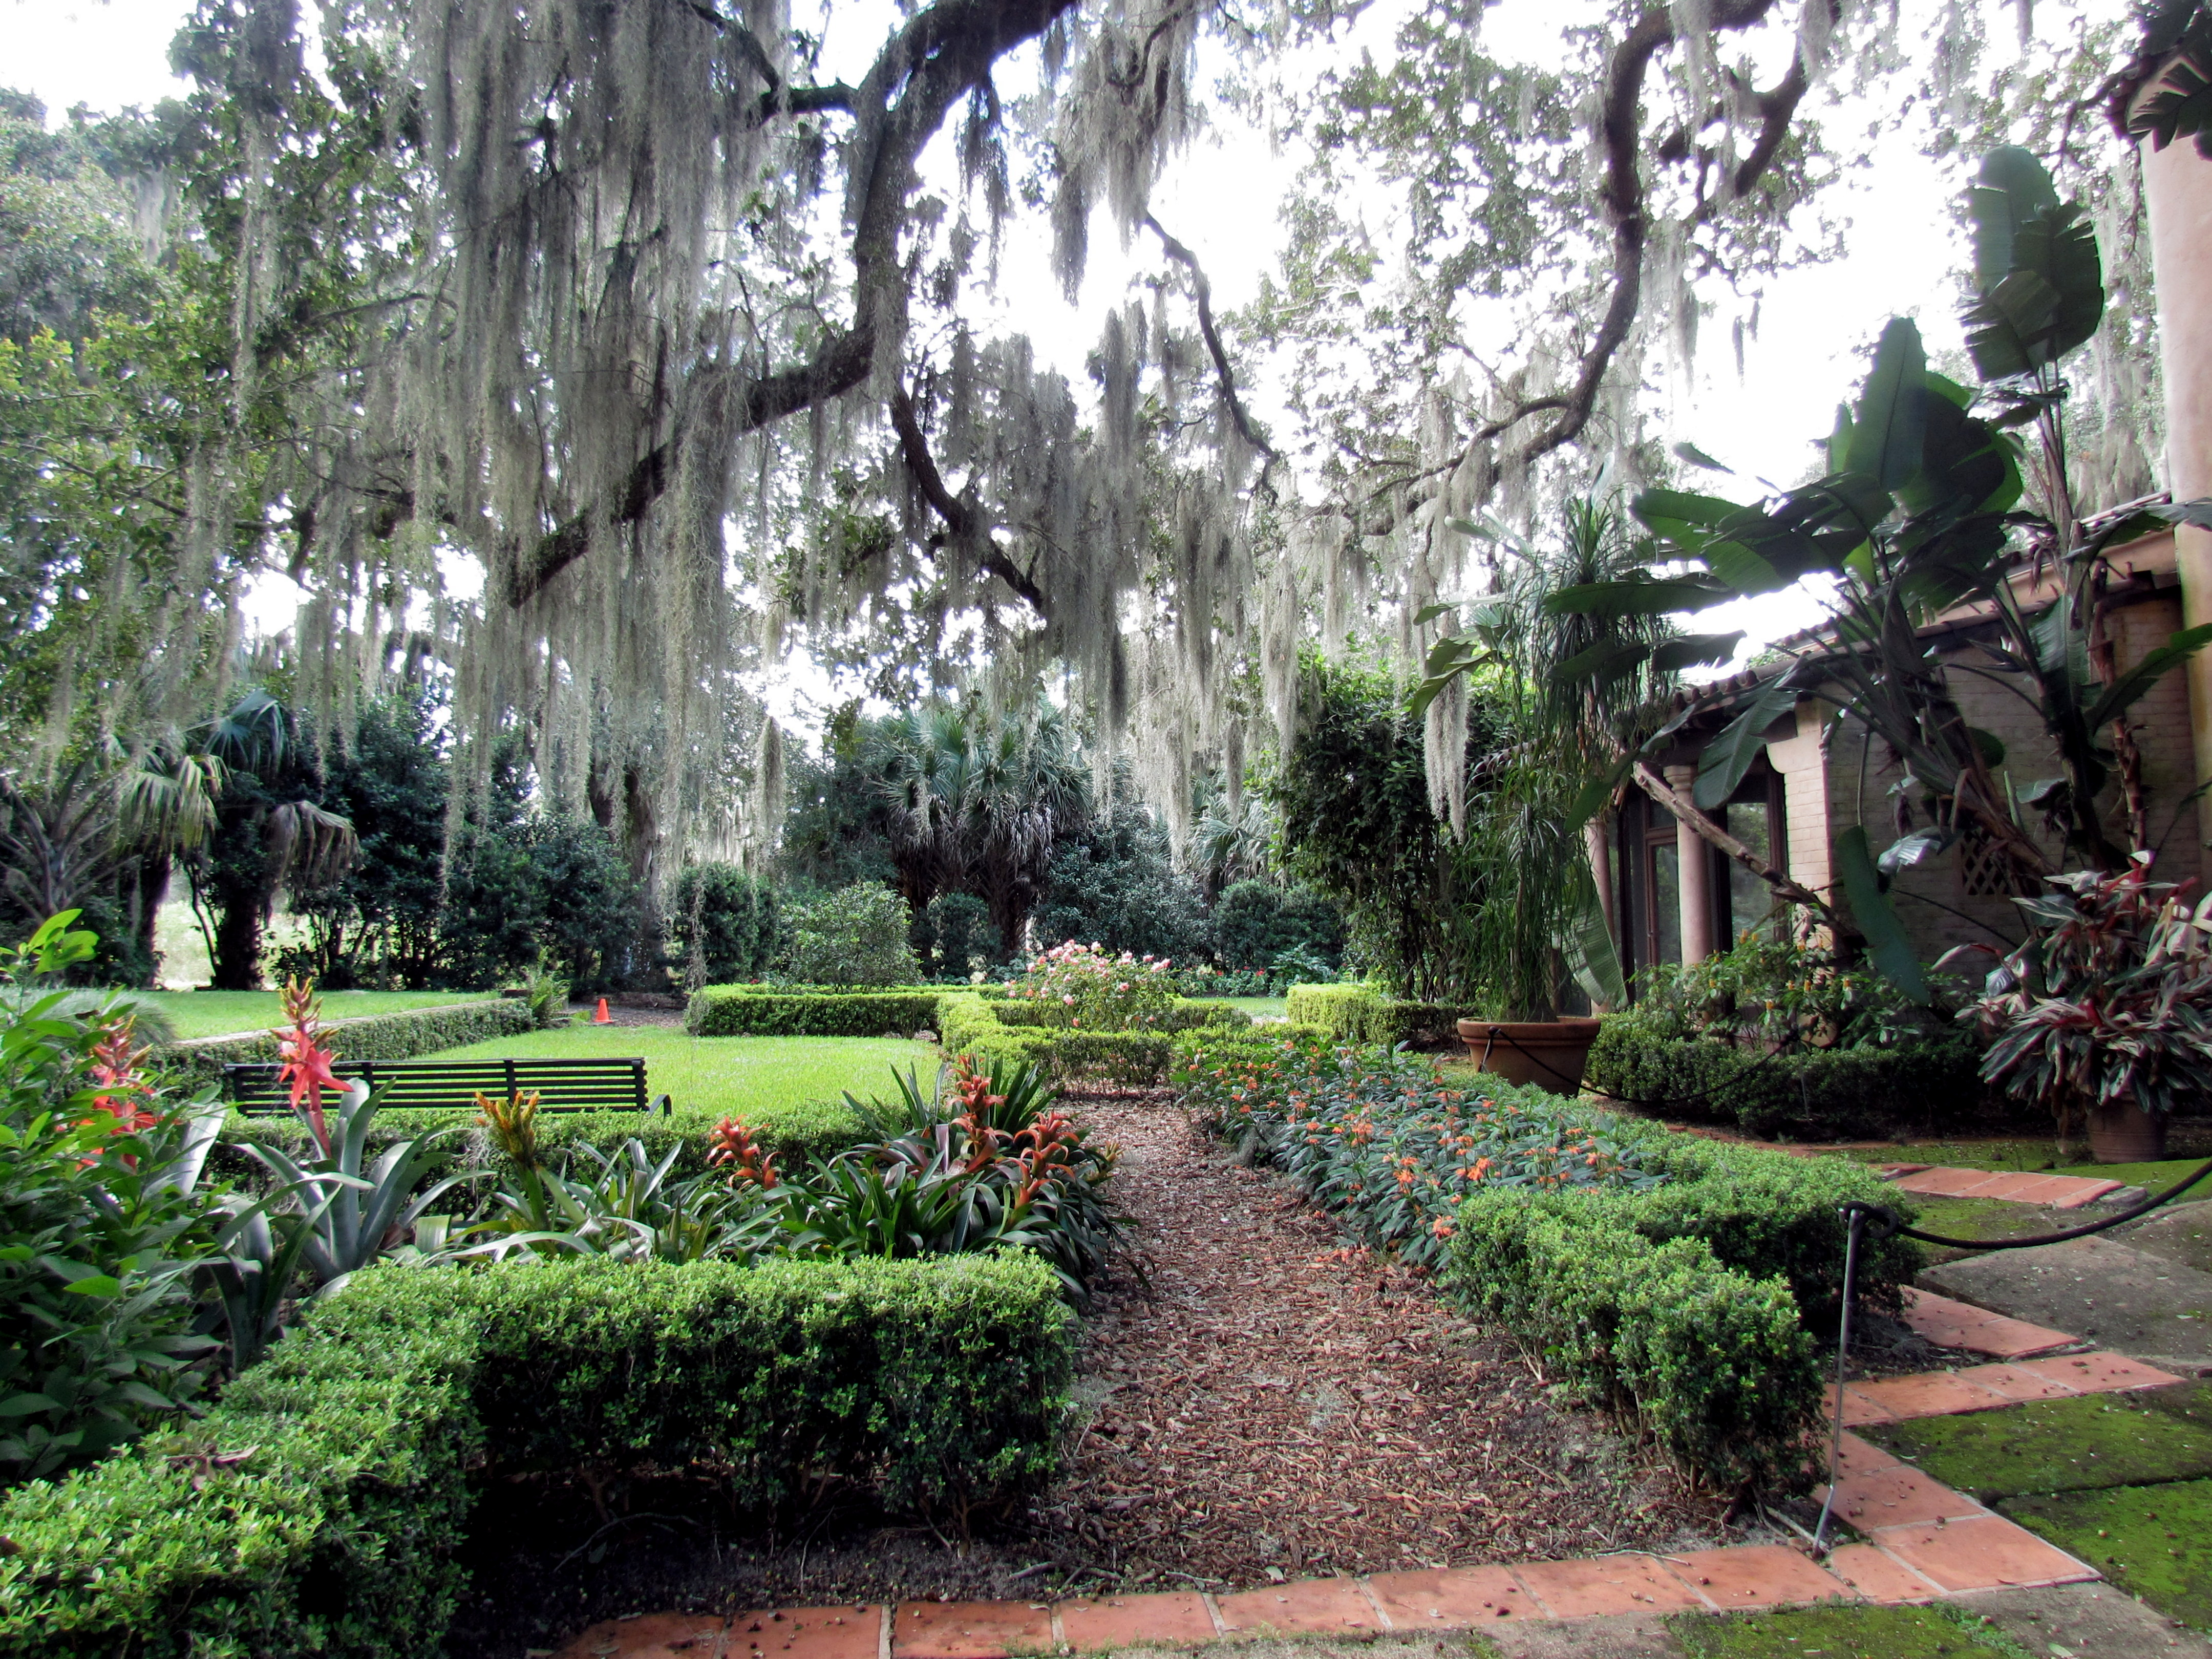 Day Bok Tower Gardens in Lake Wales